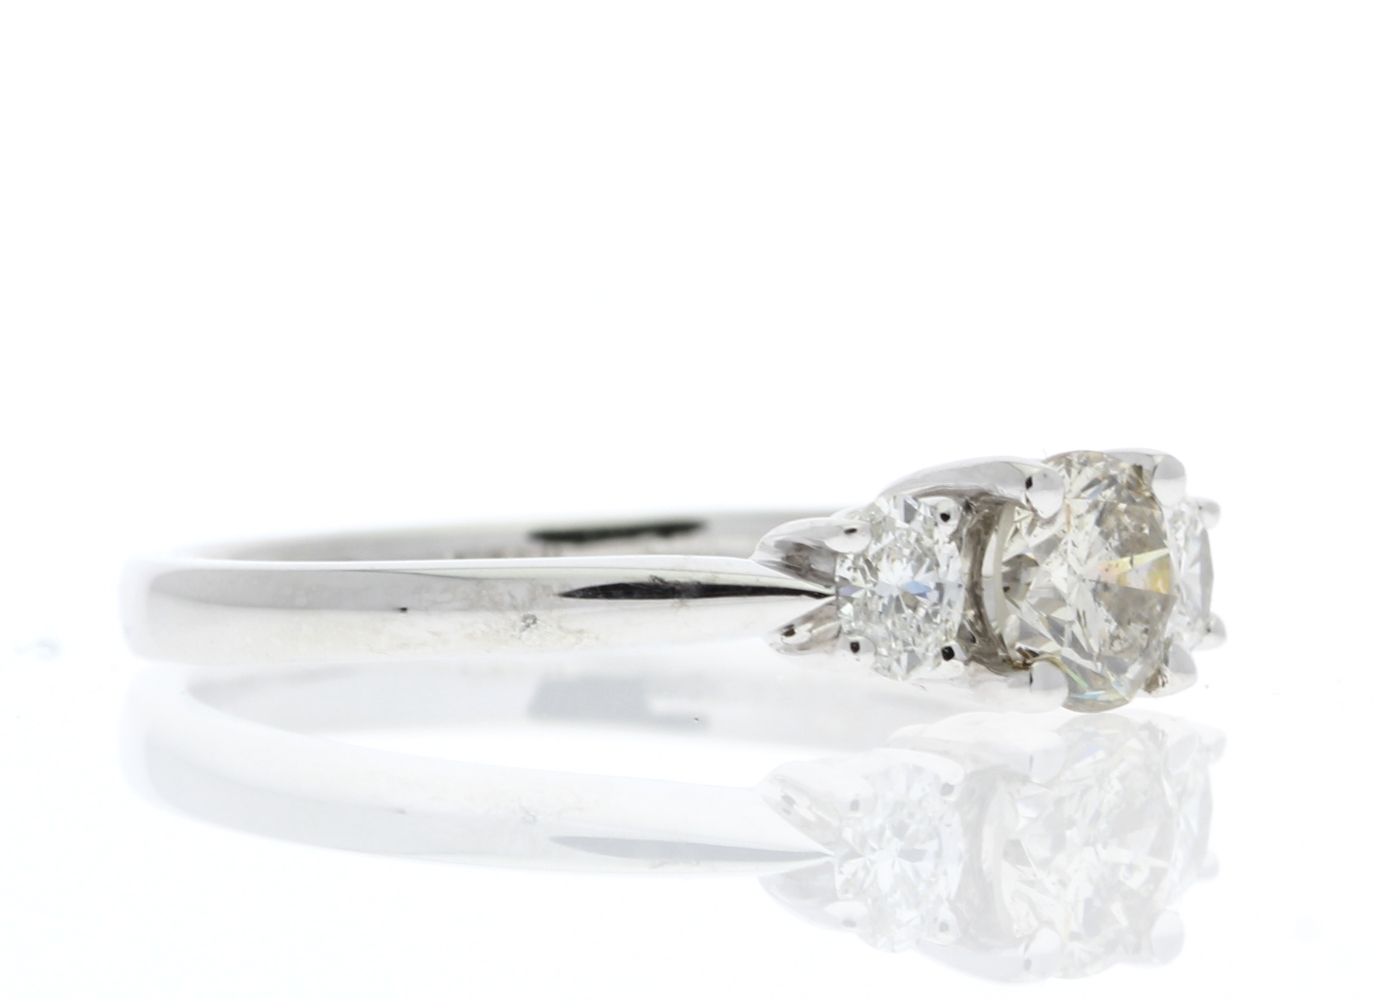 18ct White Gold Three Stone Claw Set Diamond Ring 0.73 Carats - Image 4 of 5